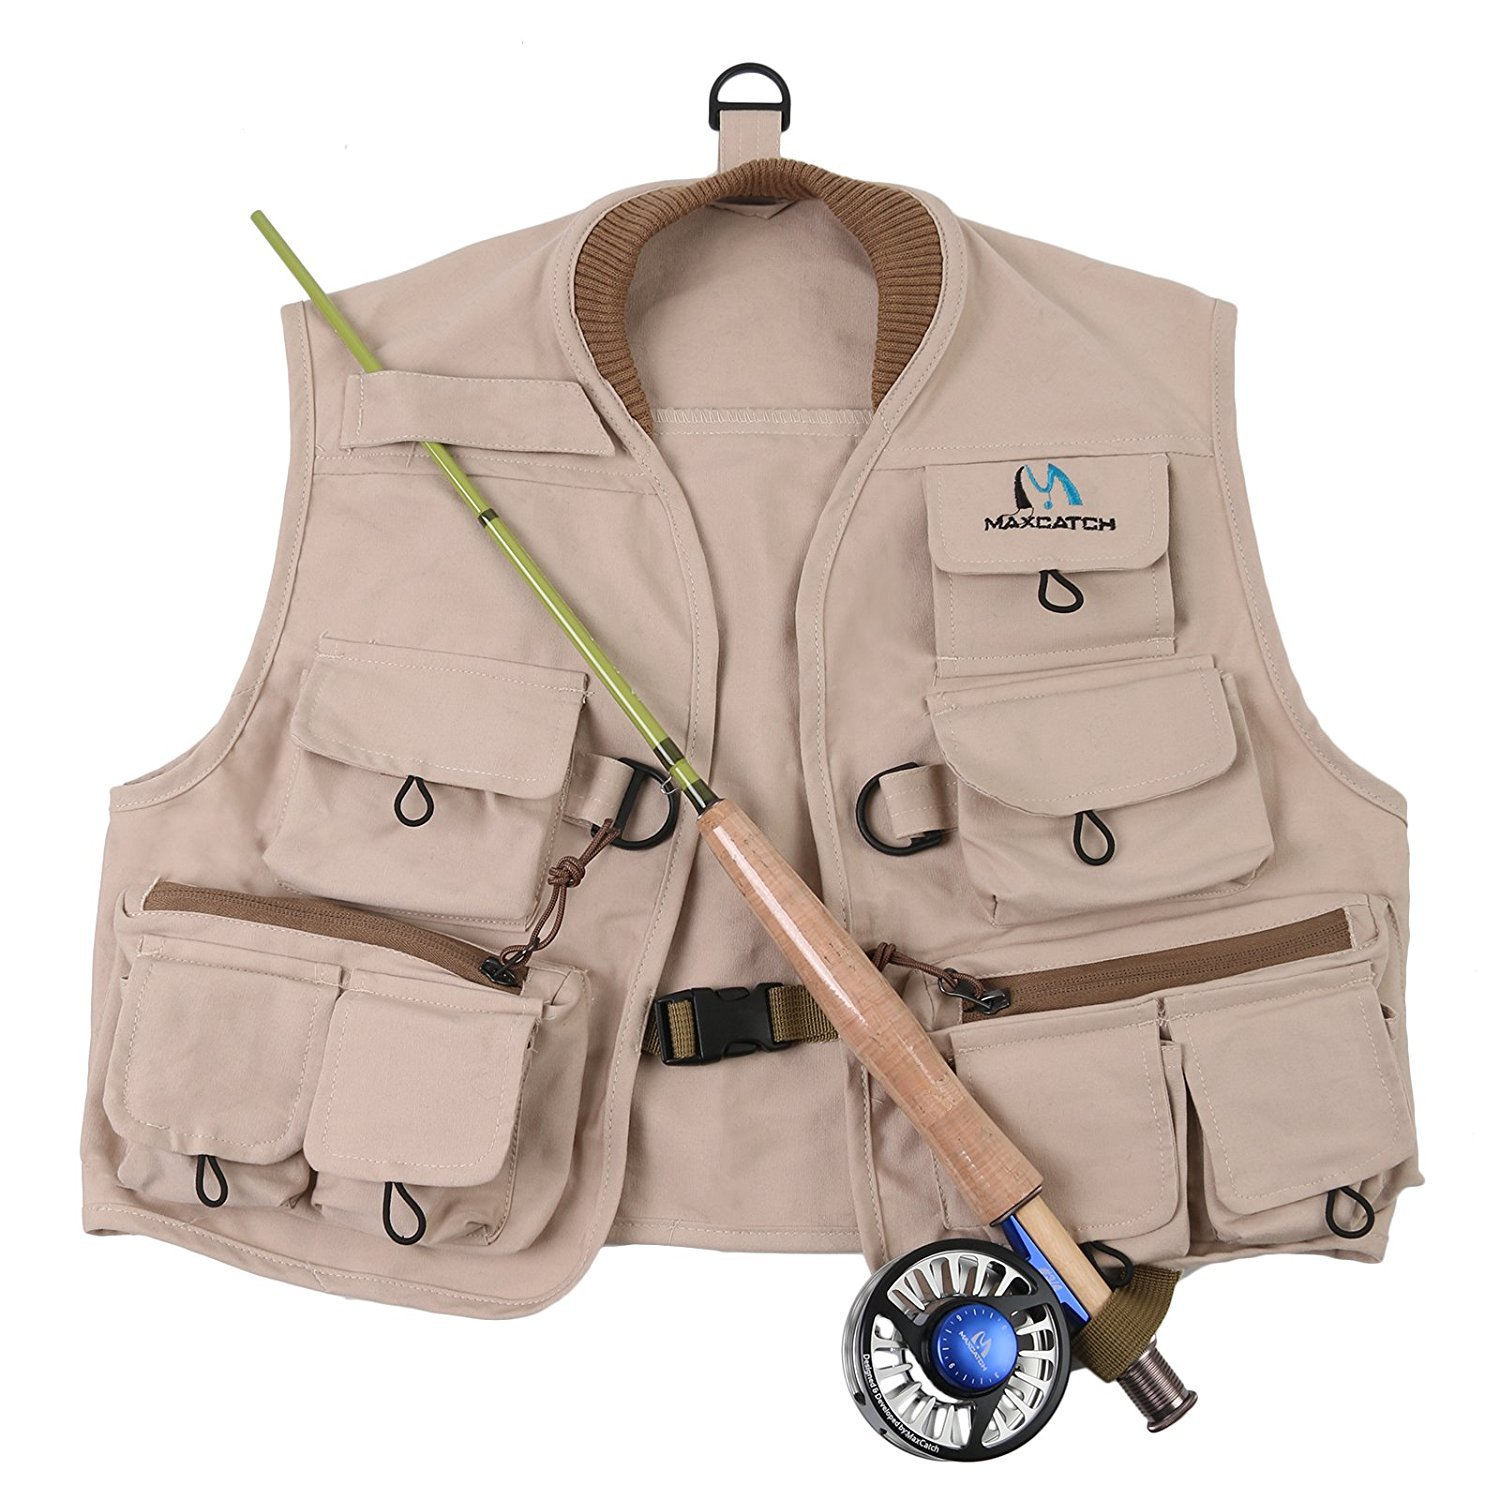 Maxcatch Kids Fly Fishing Vest Youth Vest Pack cotton Tackle